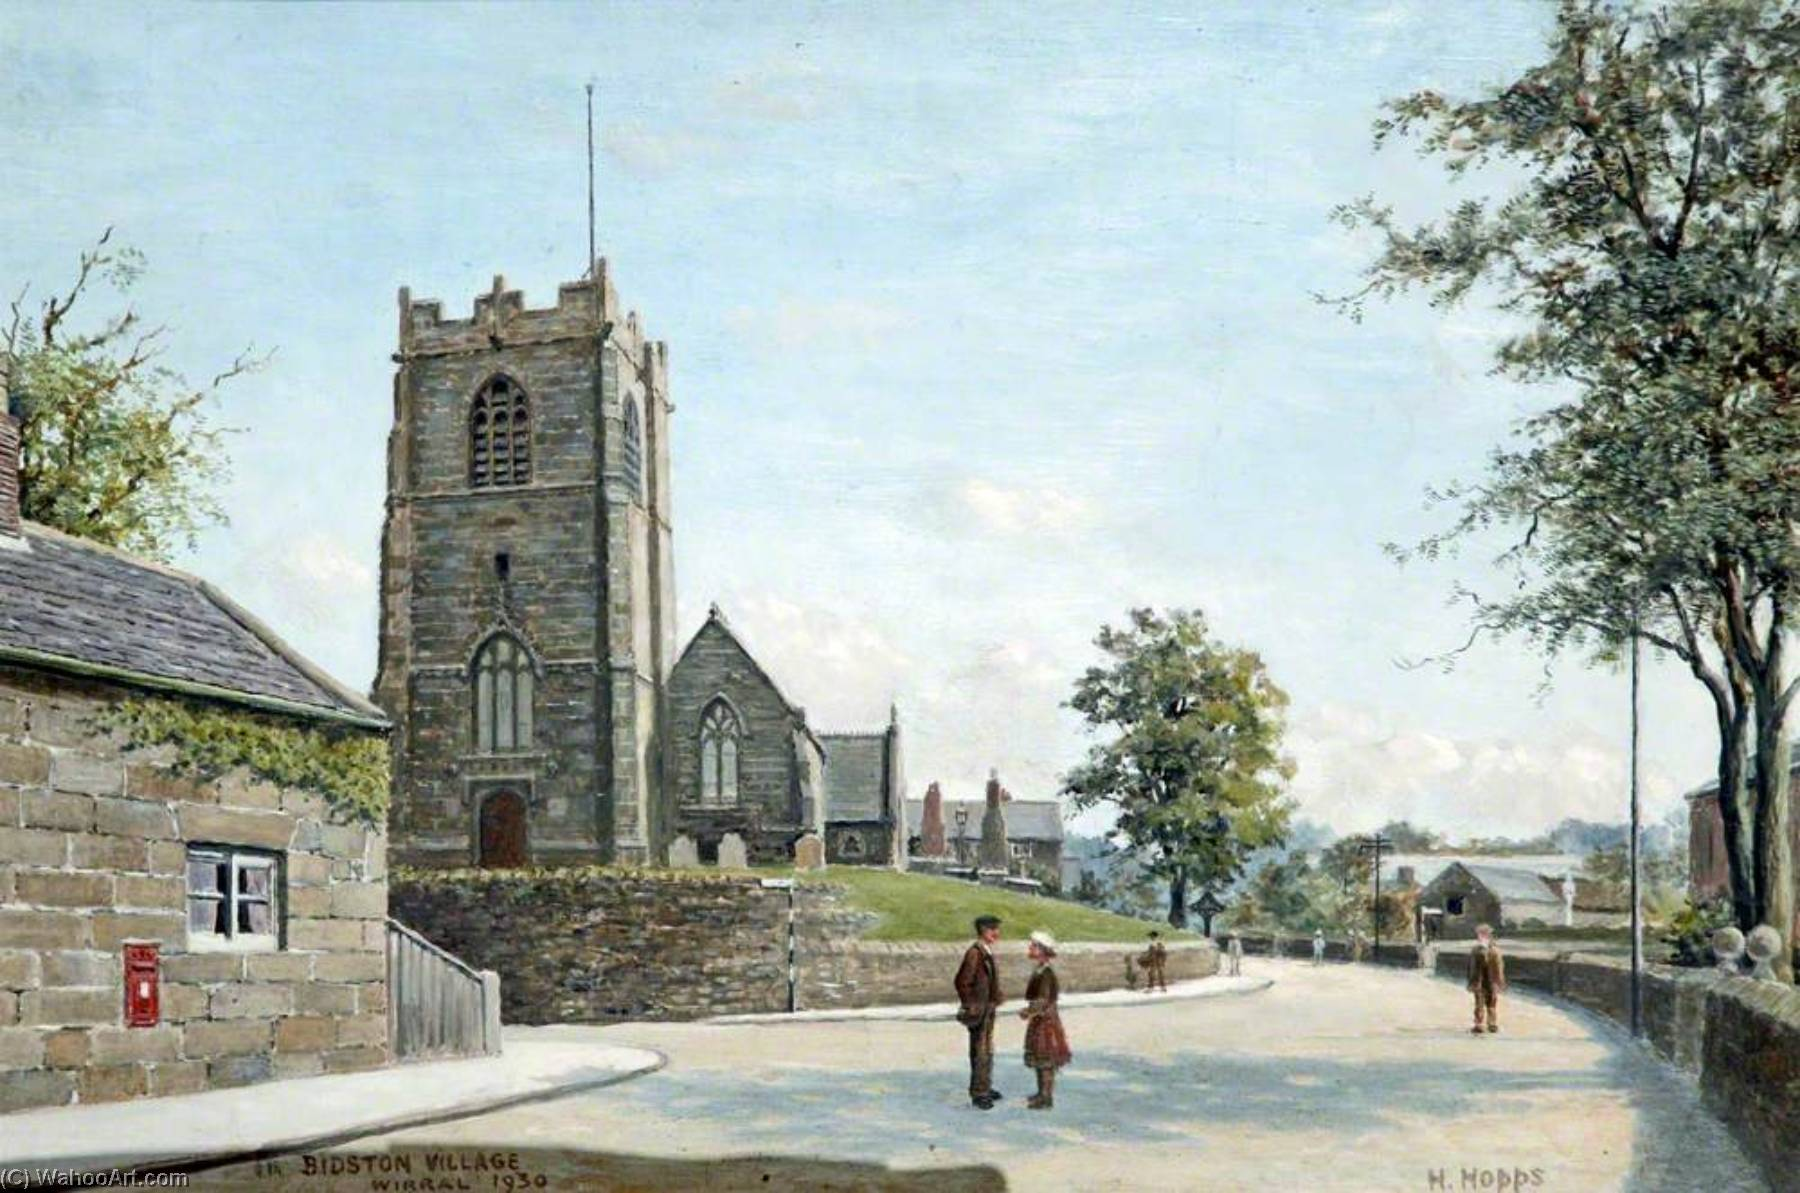 Bidston Village, Wirral, 1930 by Harold Hopps | Famous Paintings Reproductions | WahooArt.com